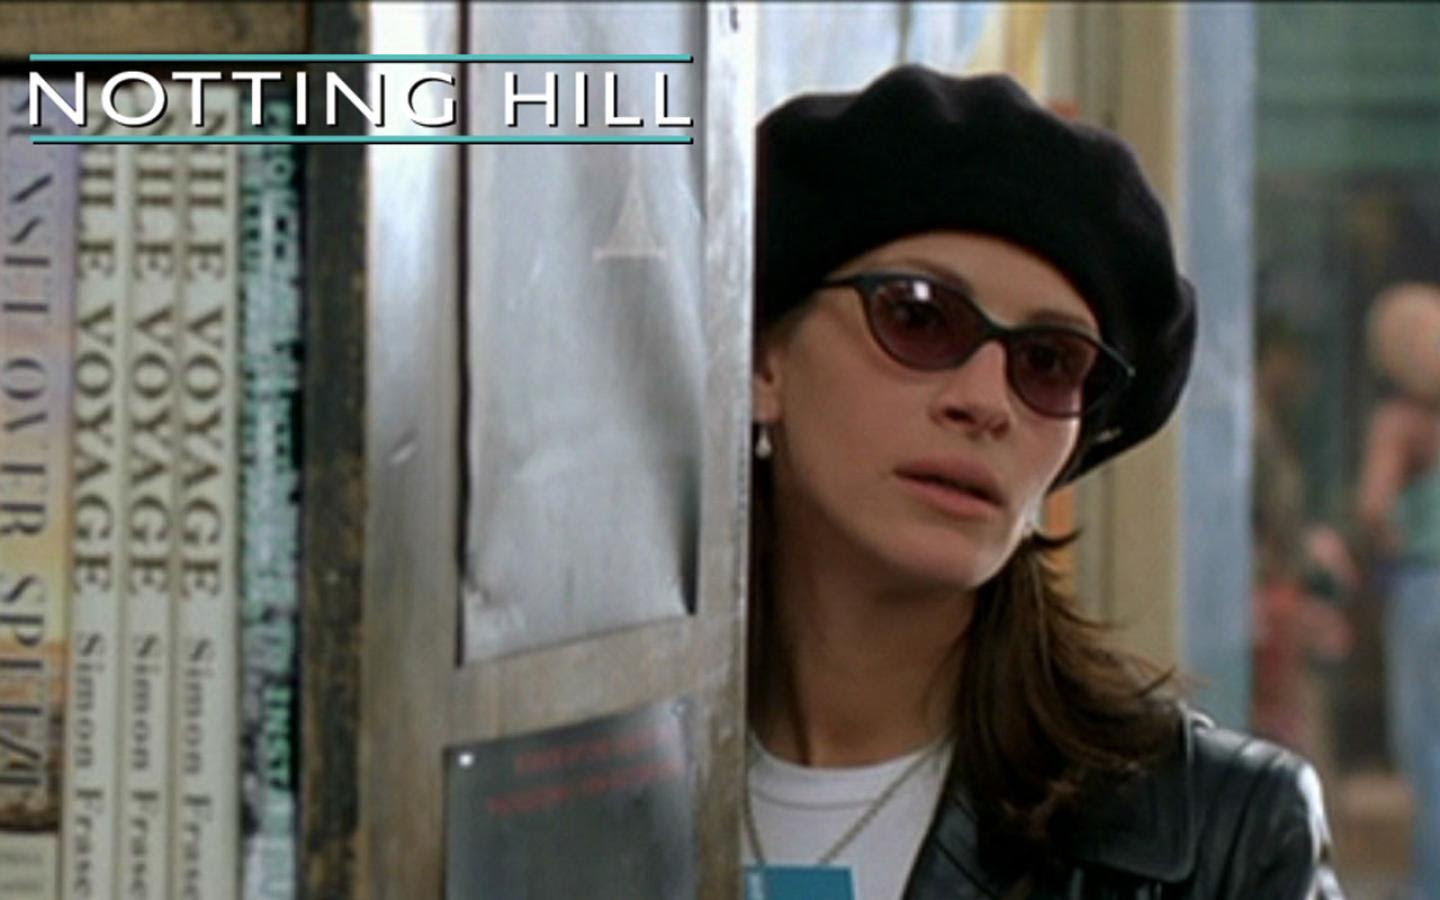 notting hill 1440x900 wallpaper 2 more notting hill wallpapers home